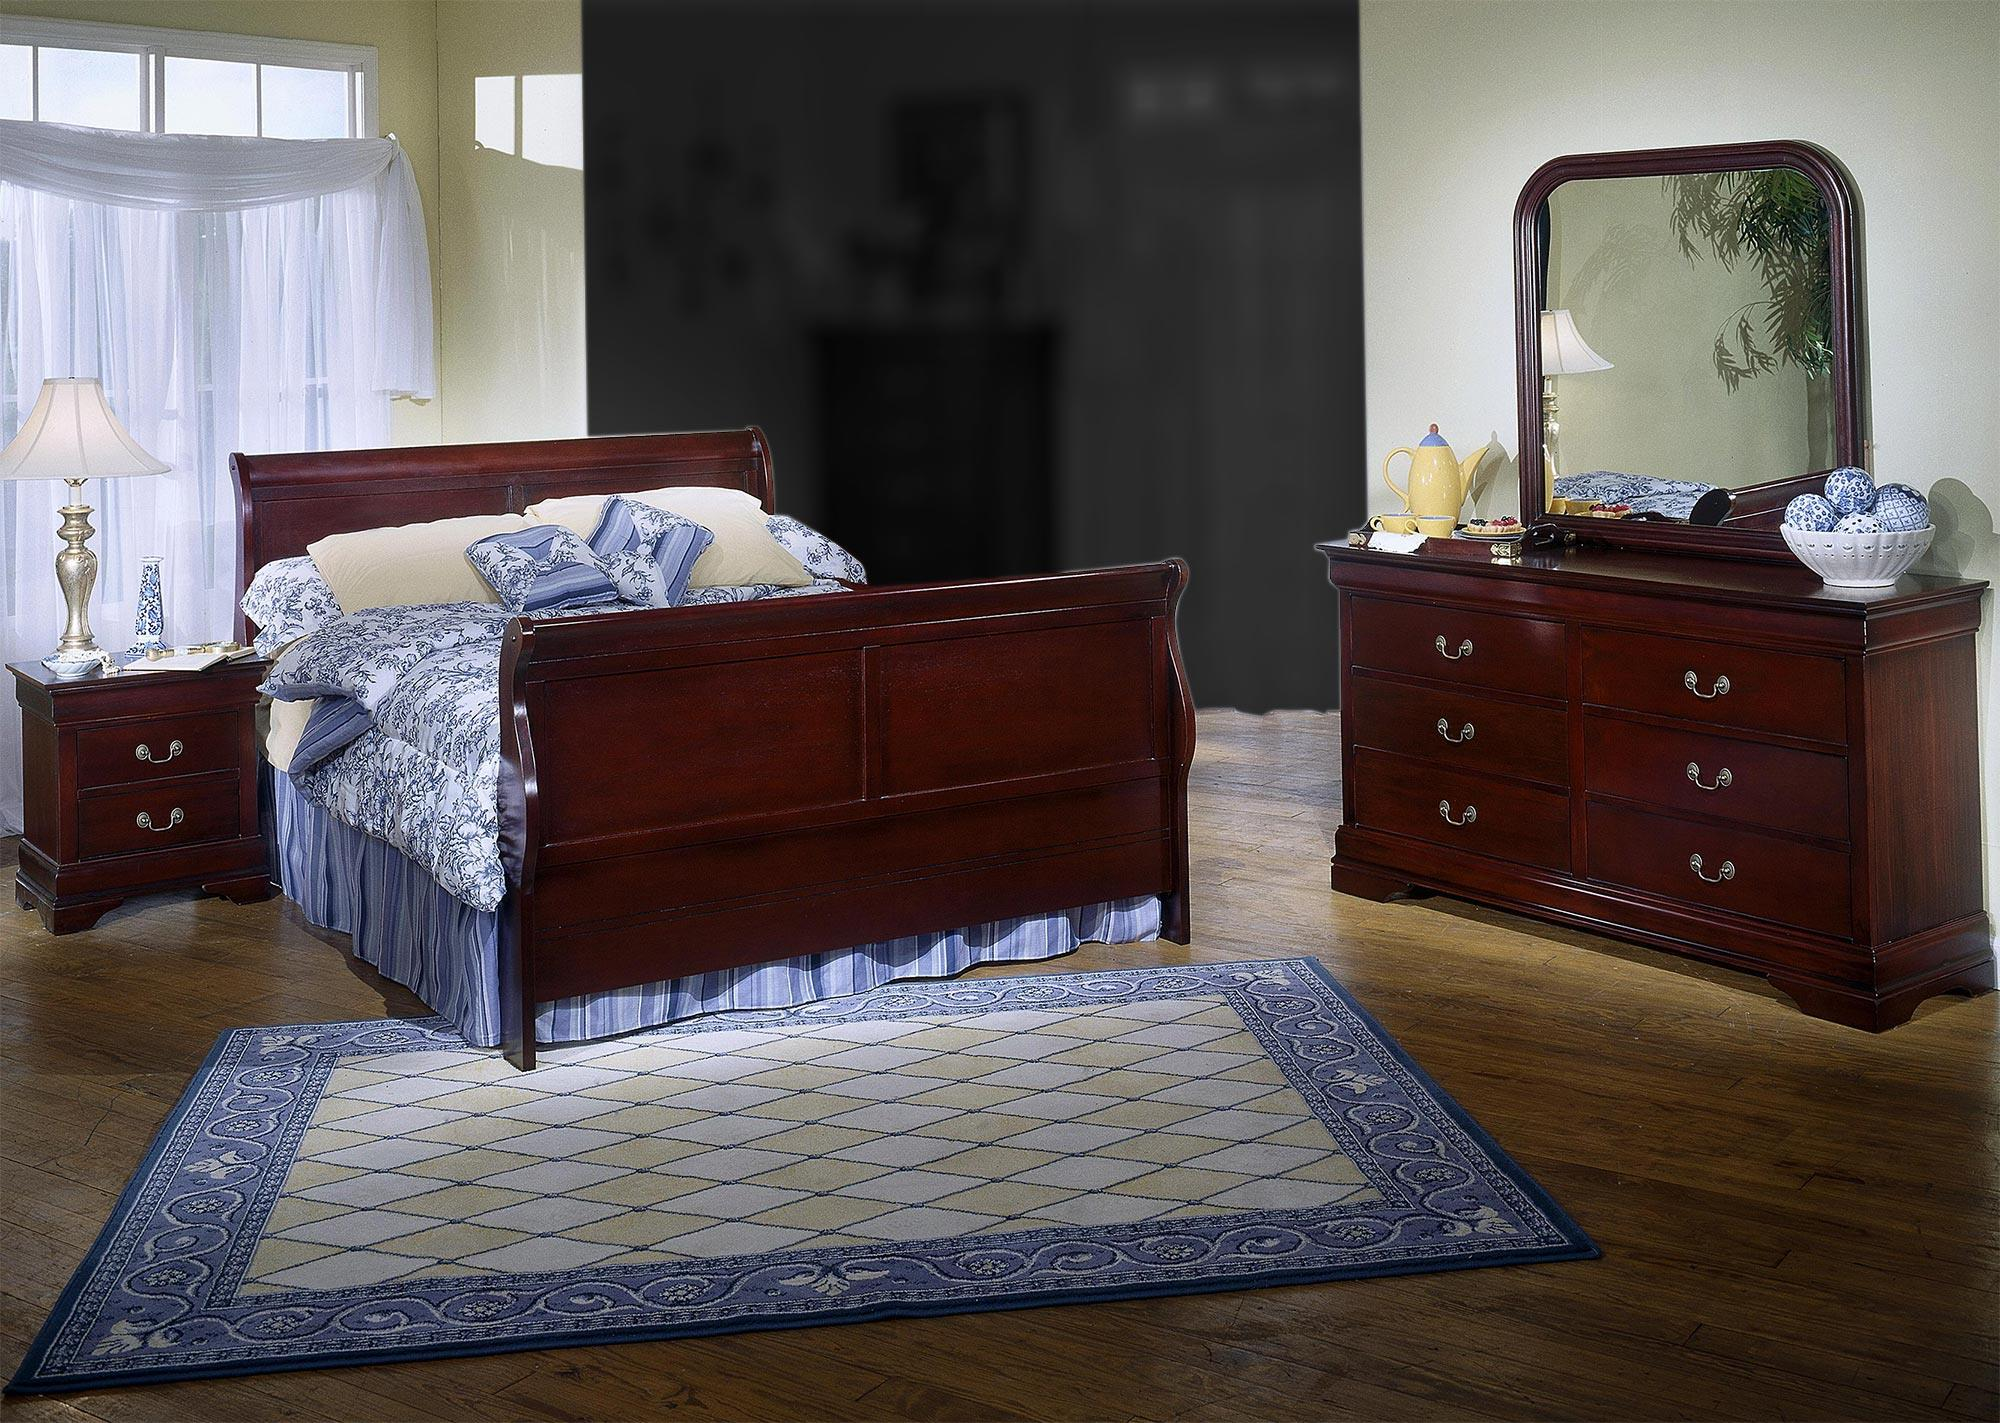 4-Piece Full Bedroom Set